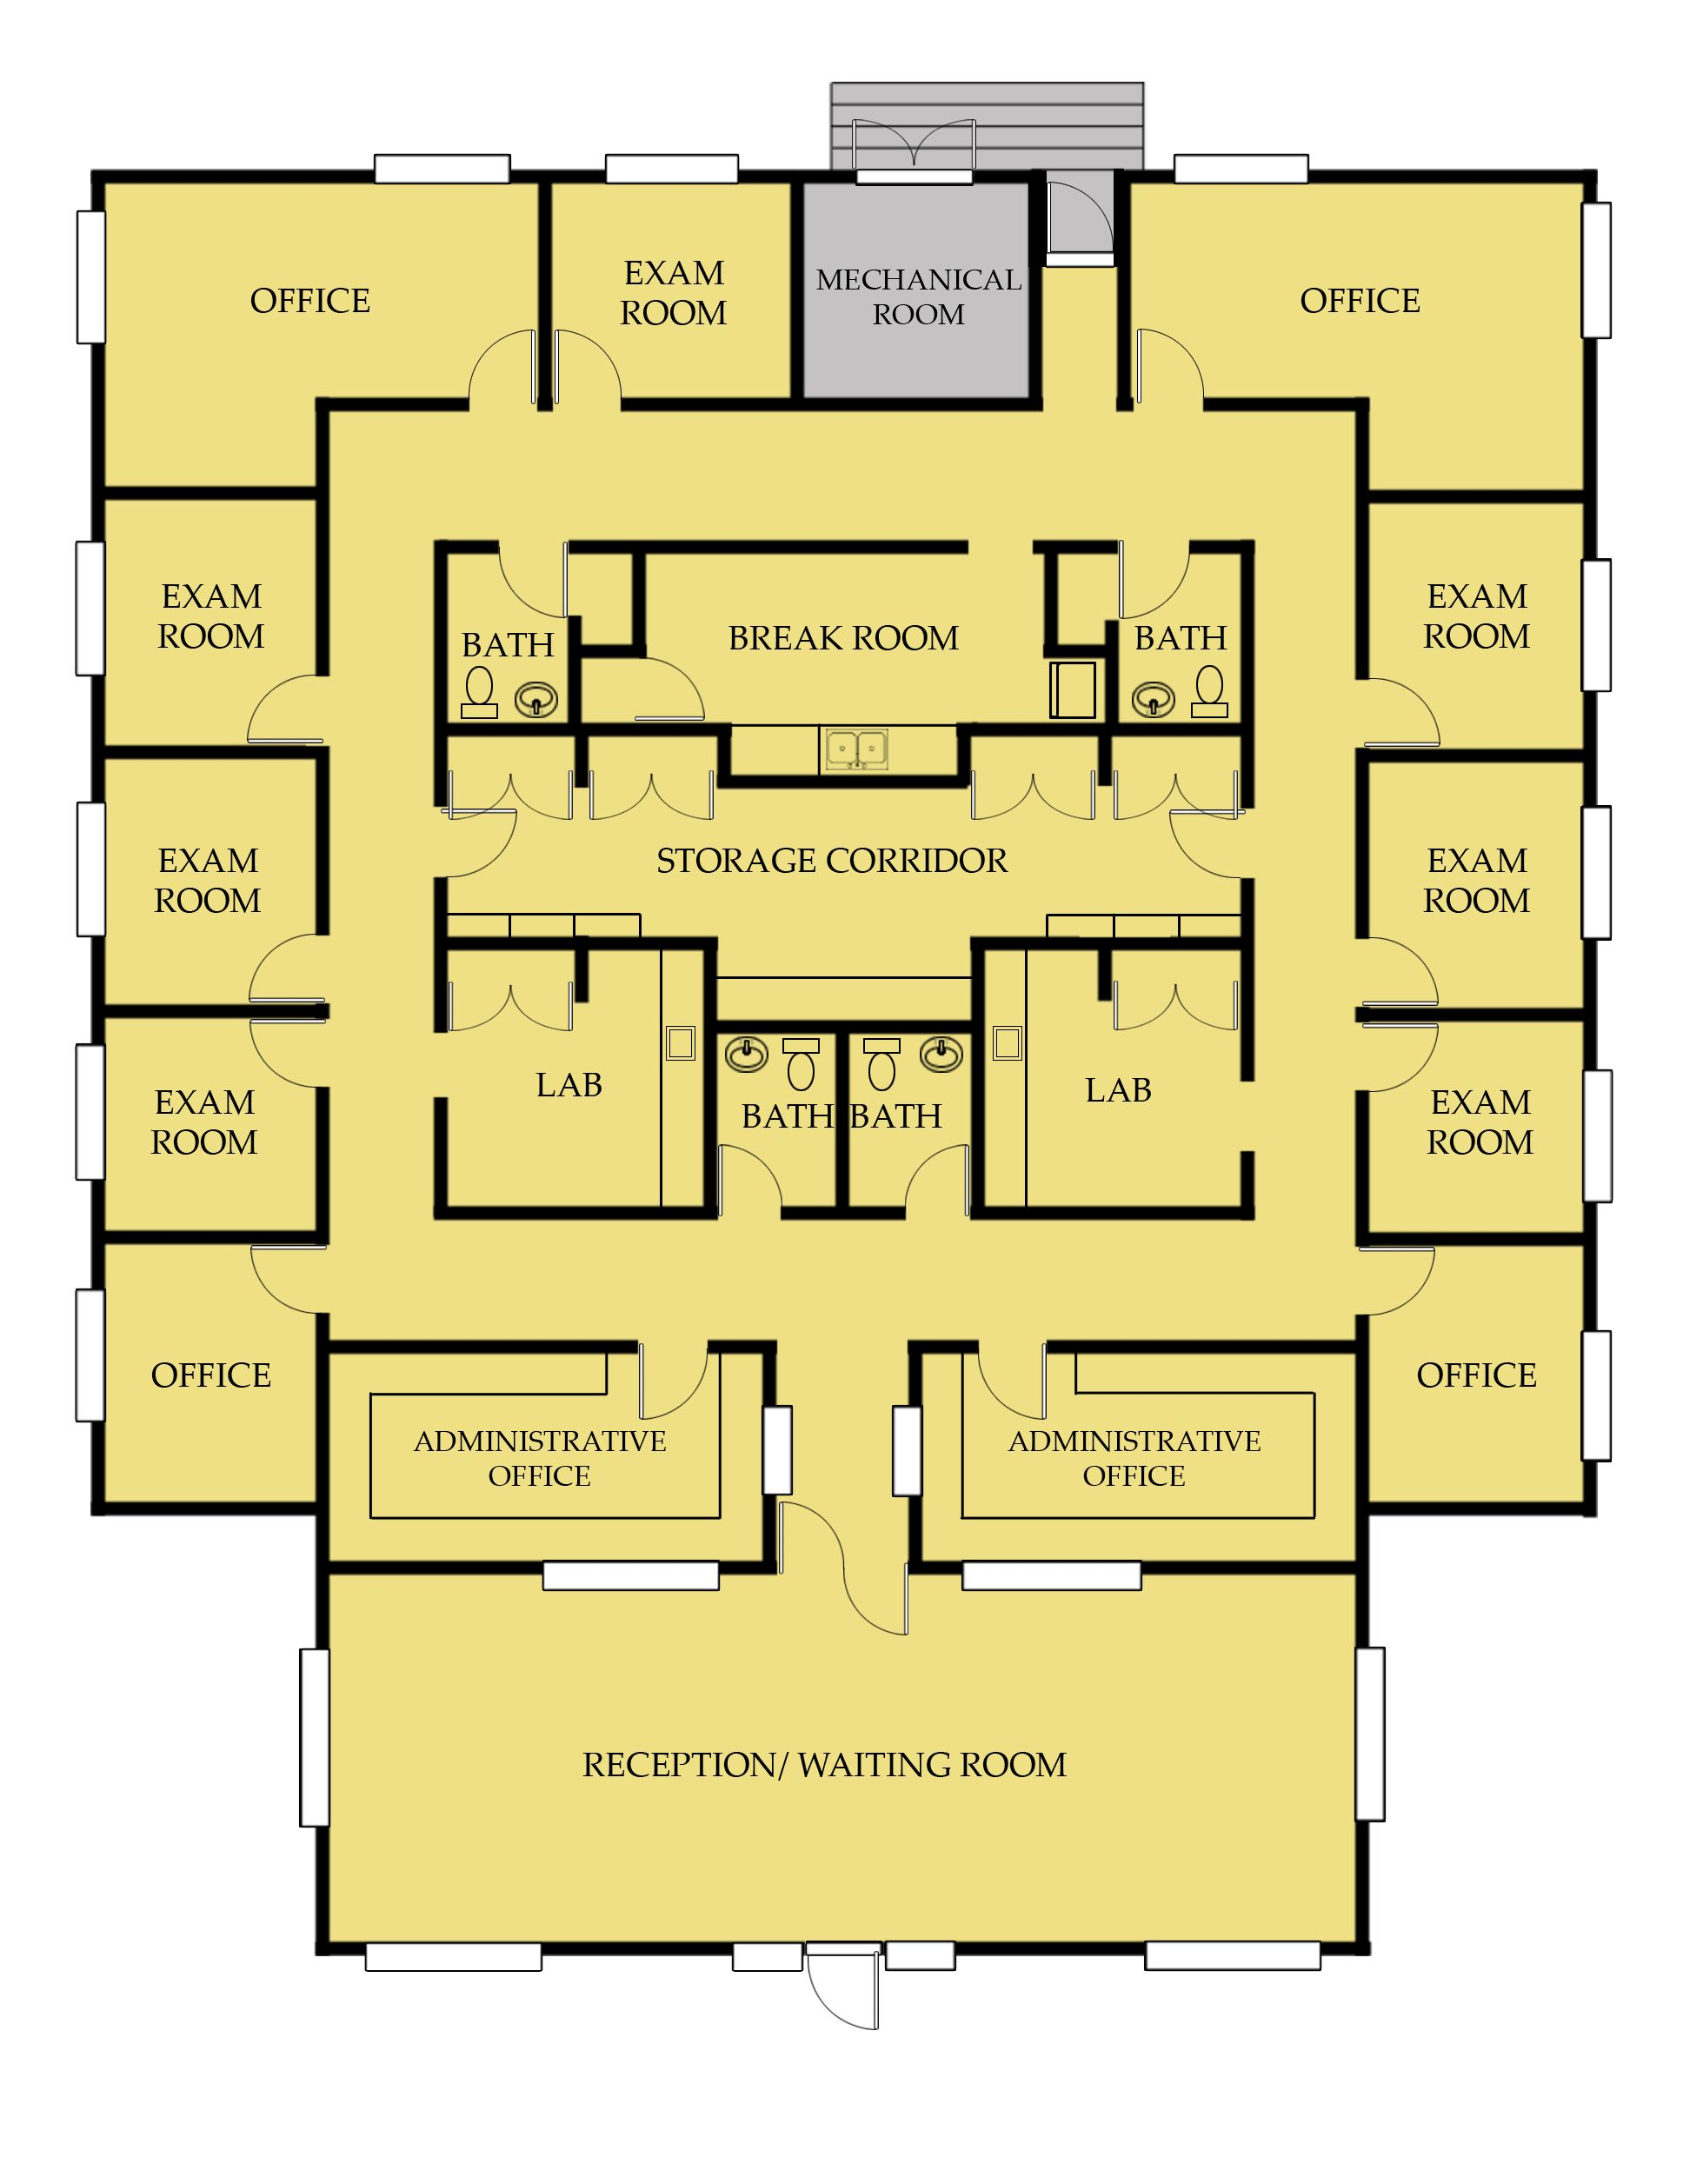 Medical office building floor plans medical pinterest for Small office building design plans